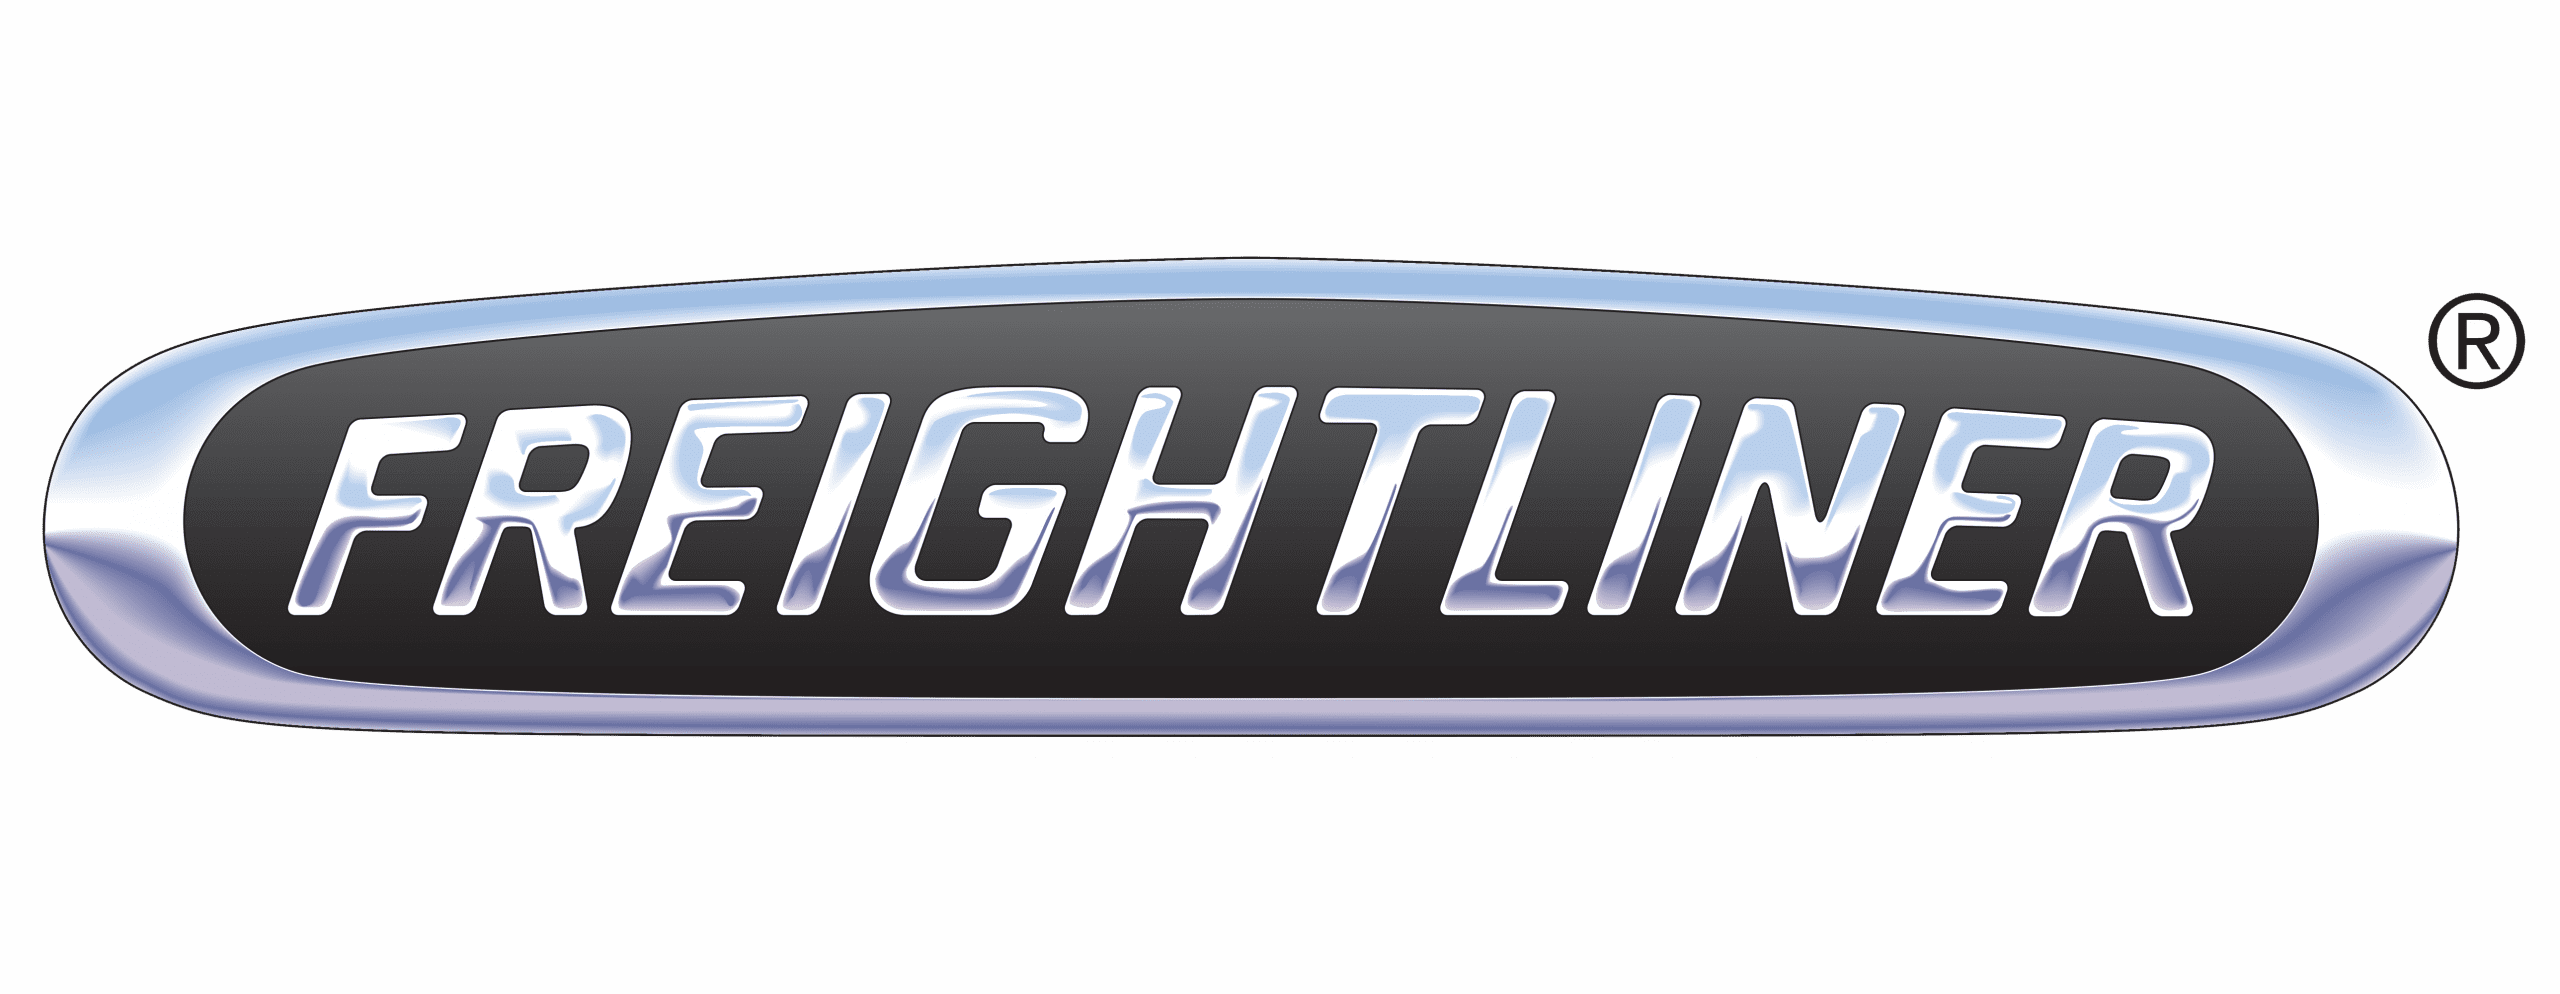 freightliner vehicle history report